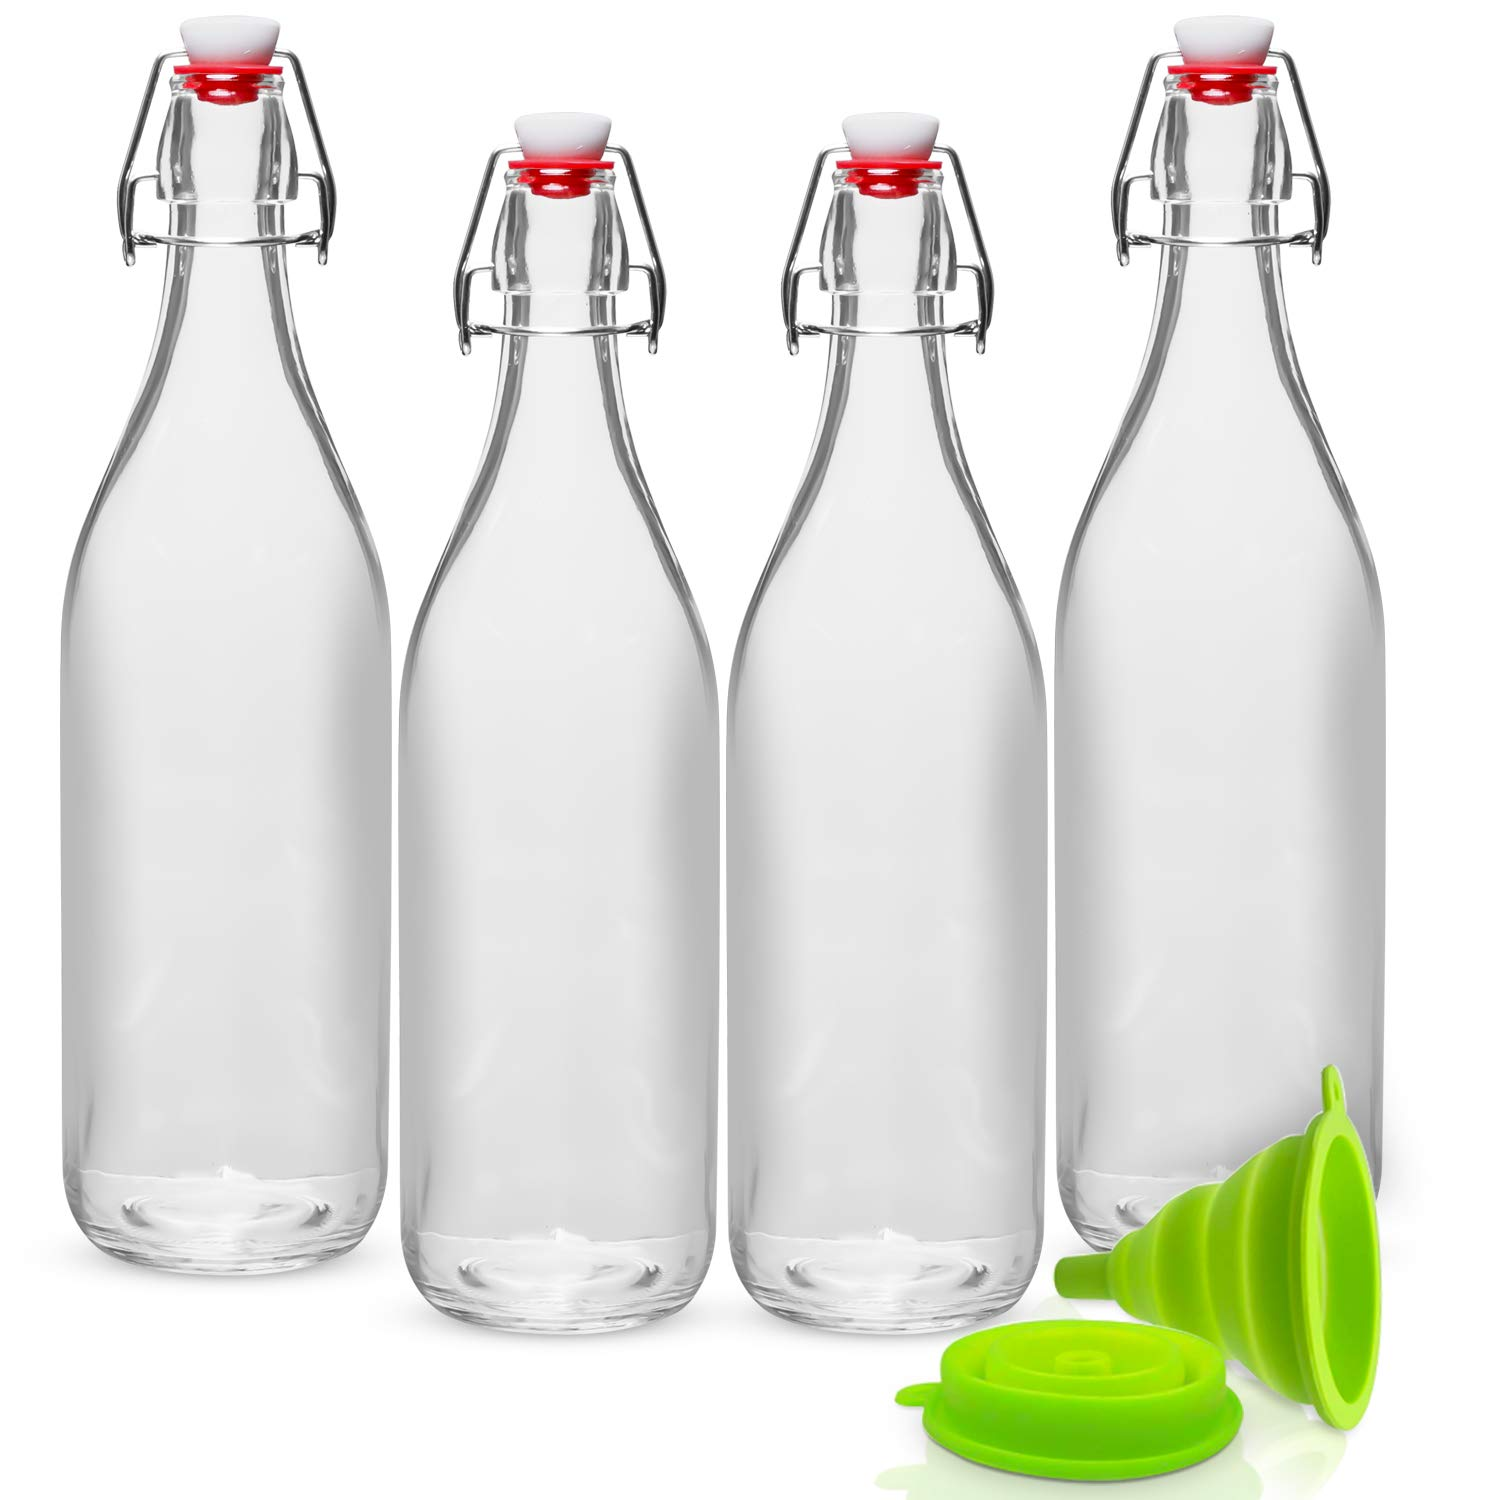 WILLDAN Giara Glass Bottle with Stopper Caps, Set of 4-33.75 Oz Swing Top Glass Bottles for Beverages, Oils, Kombucha, Kefir, Vinegar, Leak Proof Caps & Airtight Lids by WILLDAN